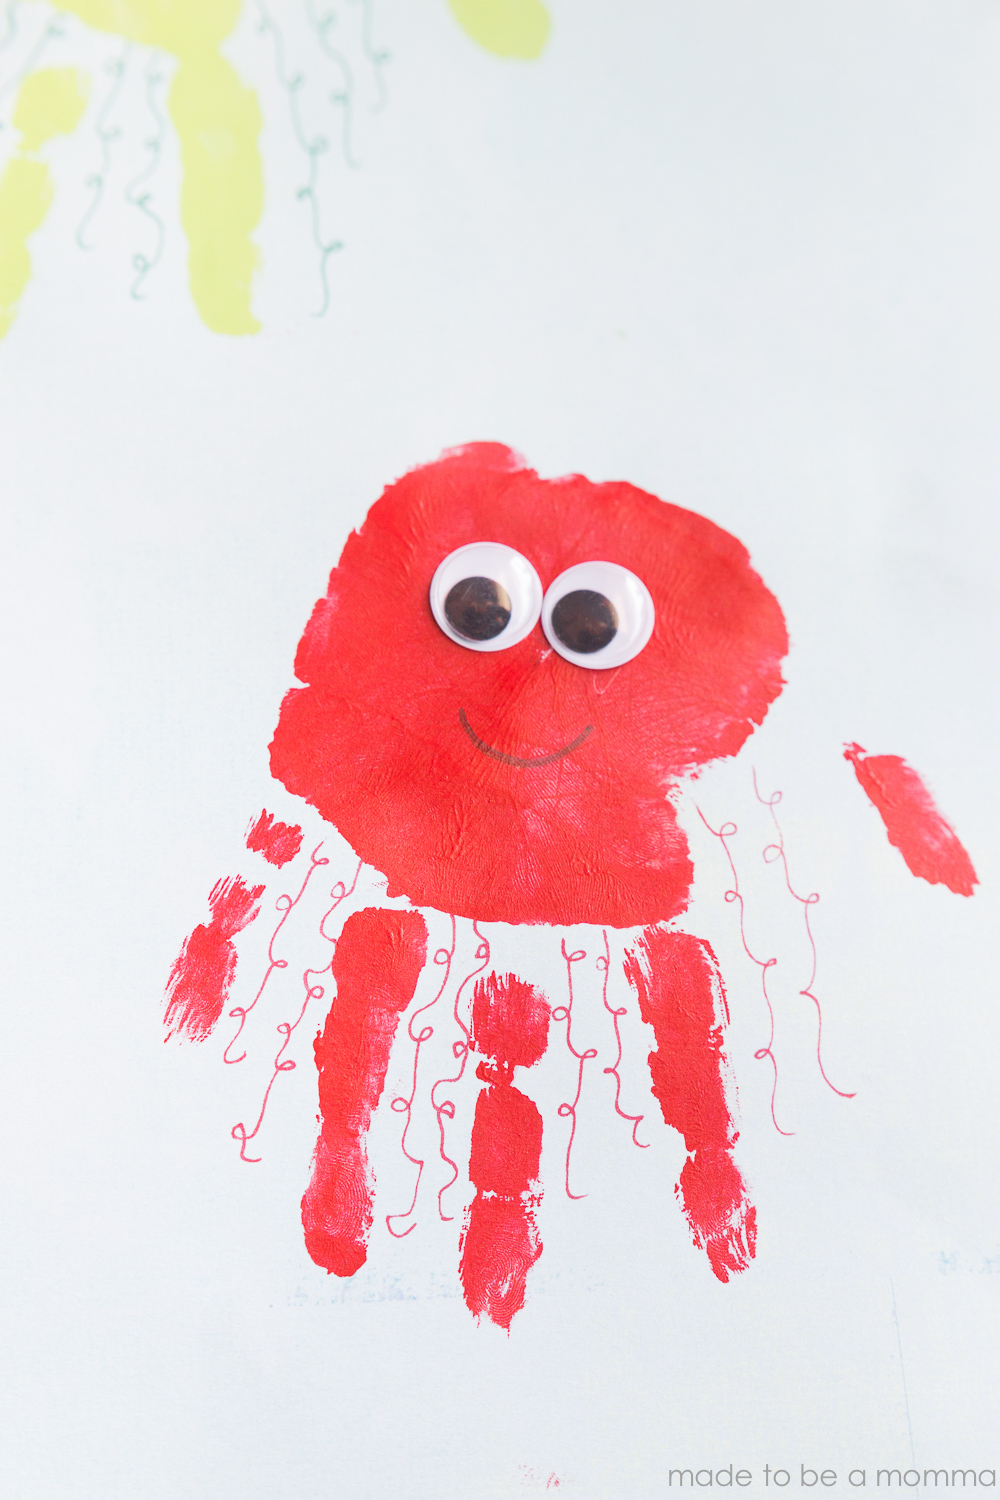 Kids Handprint Jellyfish Art - Made To Be A Momma